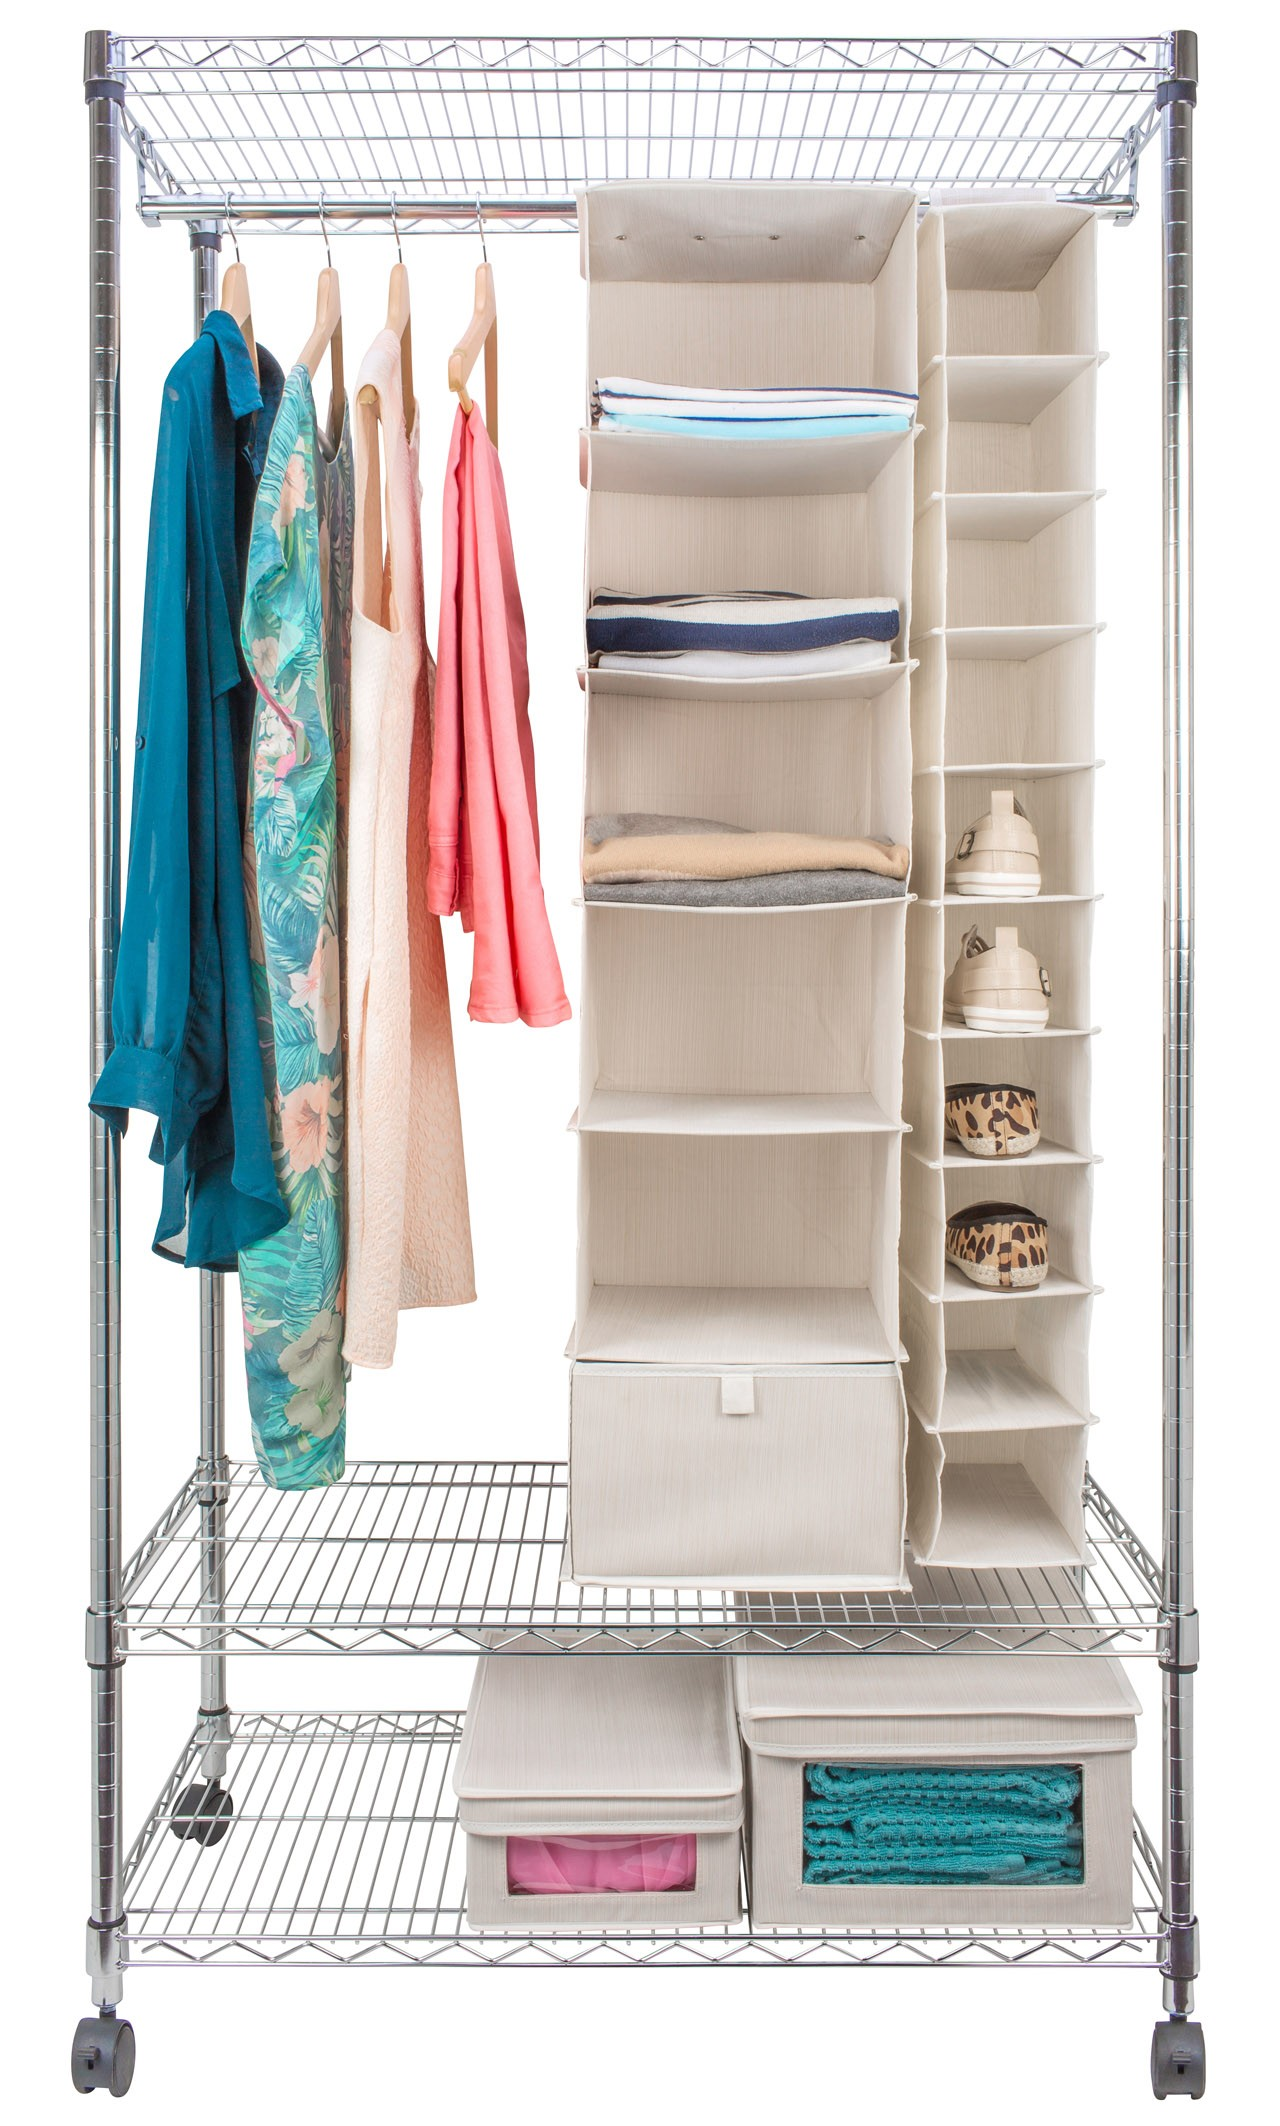 Eurowire Wardrobe With Garment Rack And Shelves From